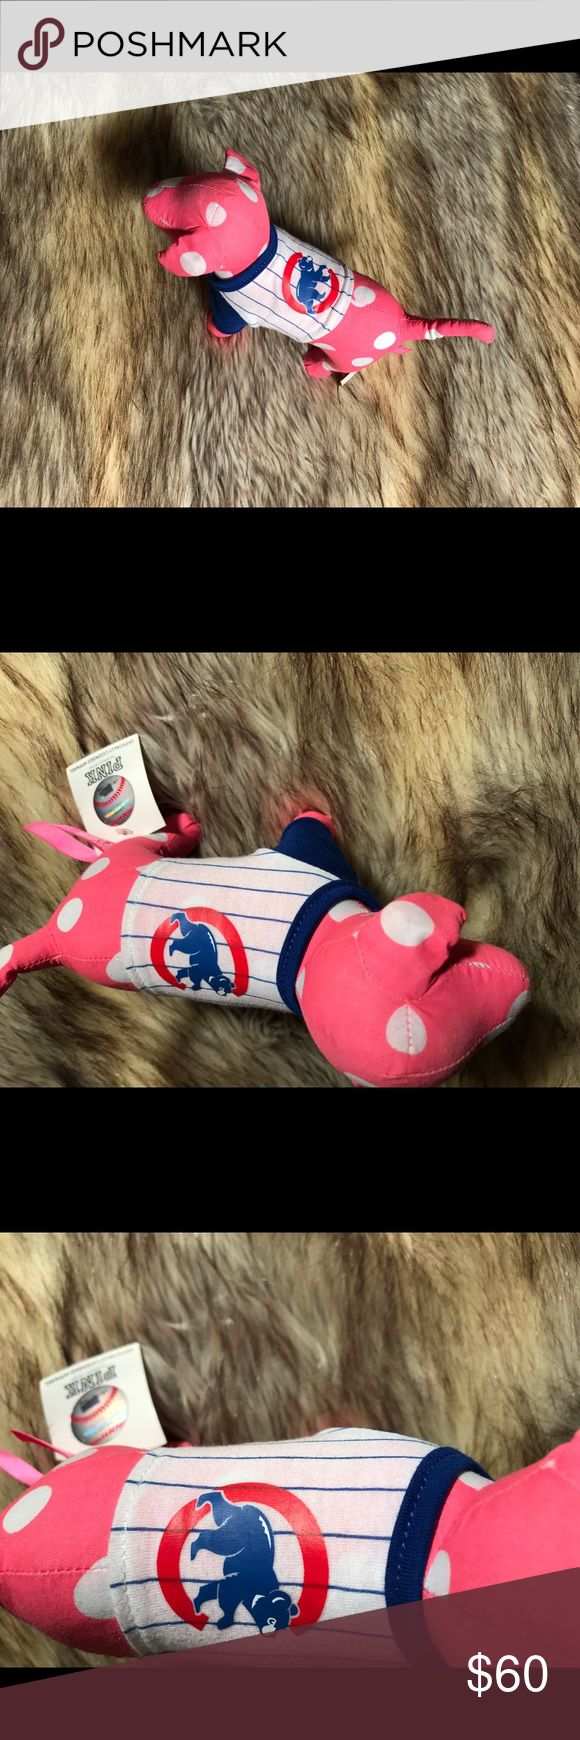 Victoria's Secret Pink Chicago Cubs Pink Dog Victoria's Secret Pink Chicago Cubs Pink Dog - NEW W TAGS (RARE DOGGIE)  RETAIL 15.00   ITEM HAS BEEN STORED IN A PET AND SMOKE FREE HOME  THANKS FOR LOOKING :) PINK Victoria's Secret Accessories